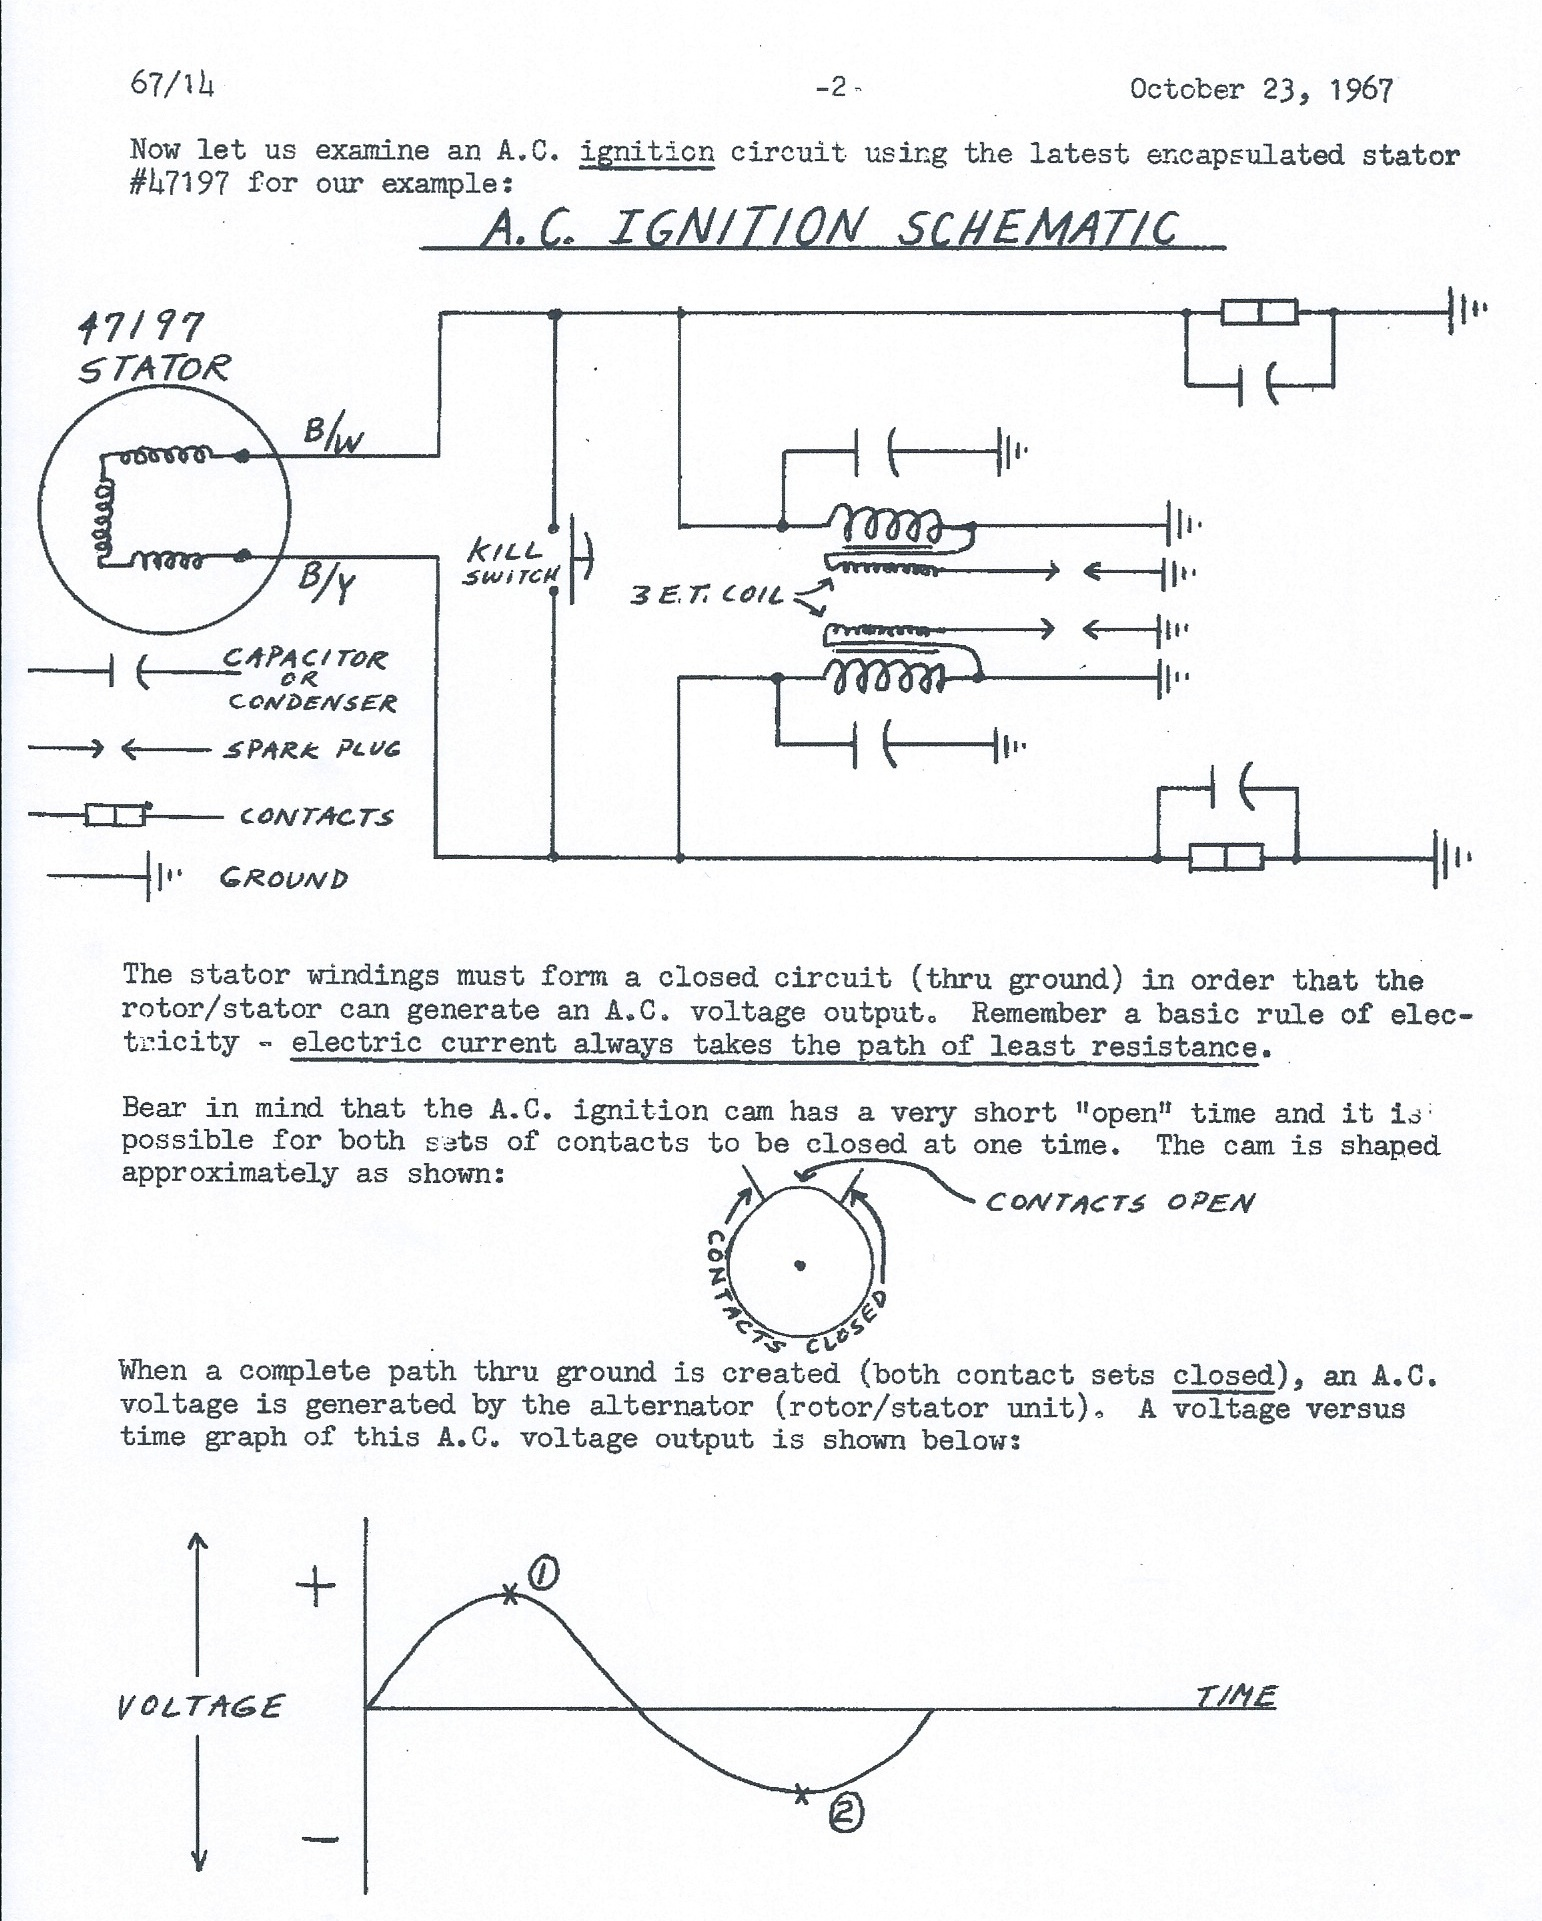 Charming Boyer Ignition Wiring Diagram Images - Electrical and ...